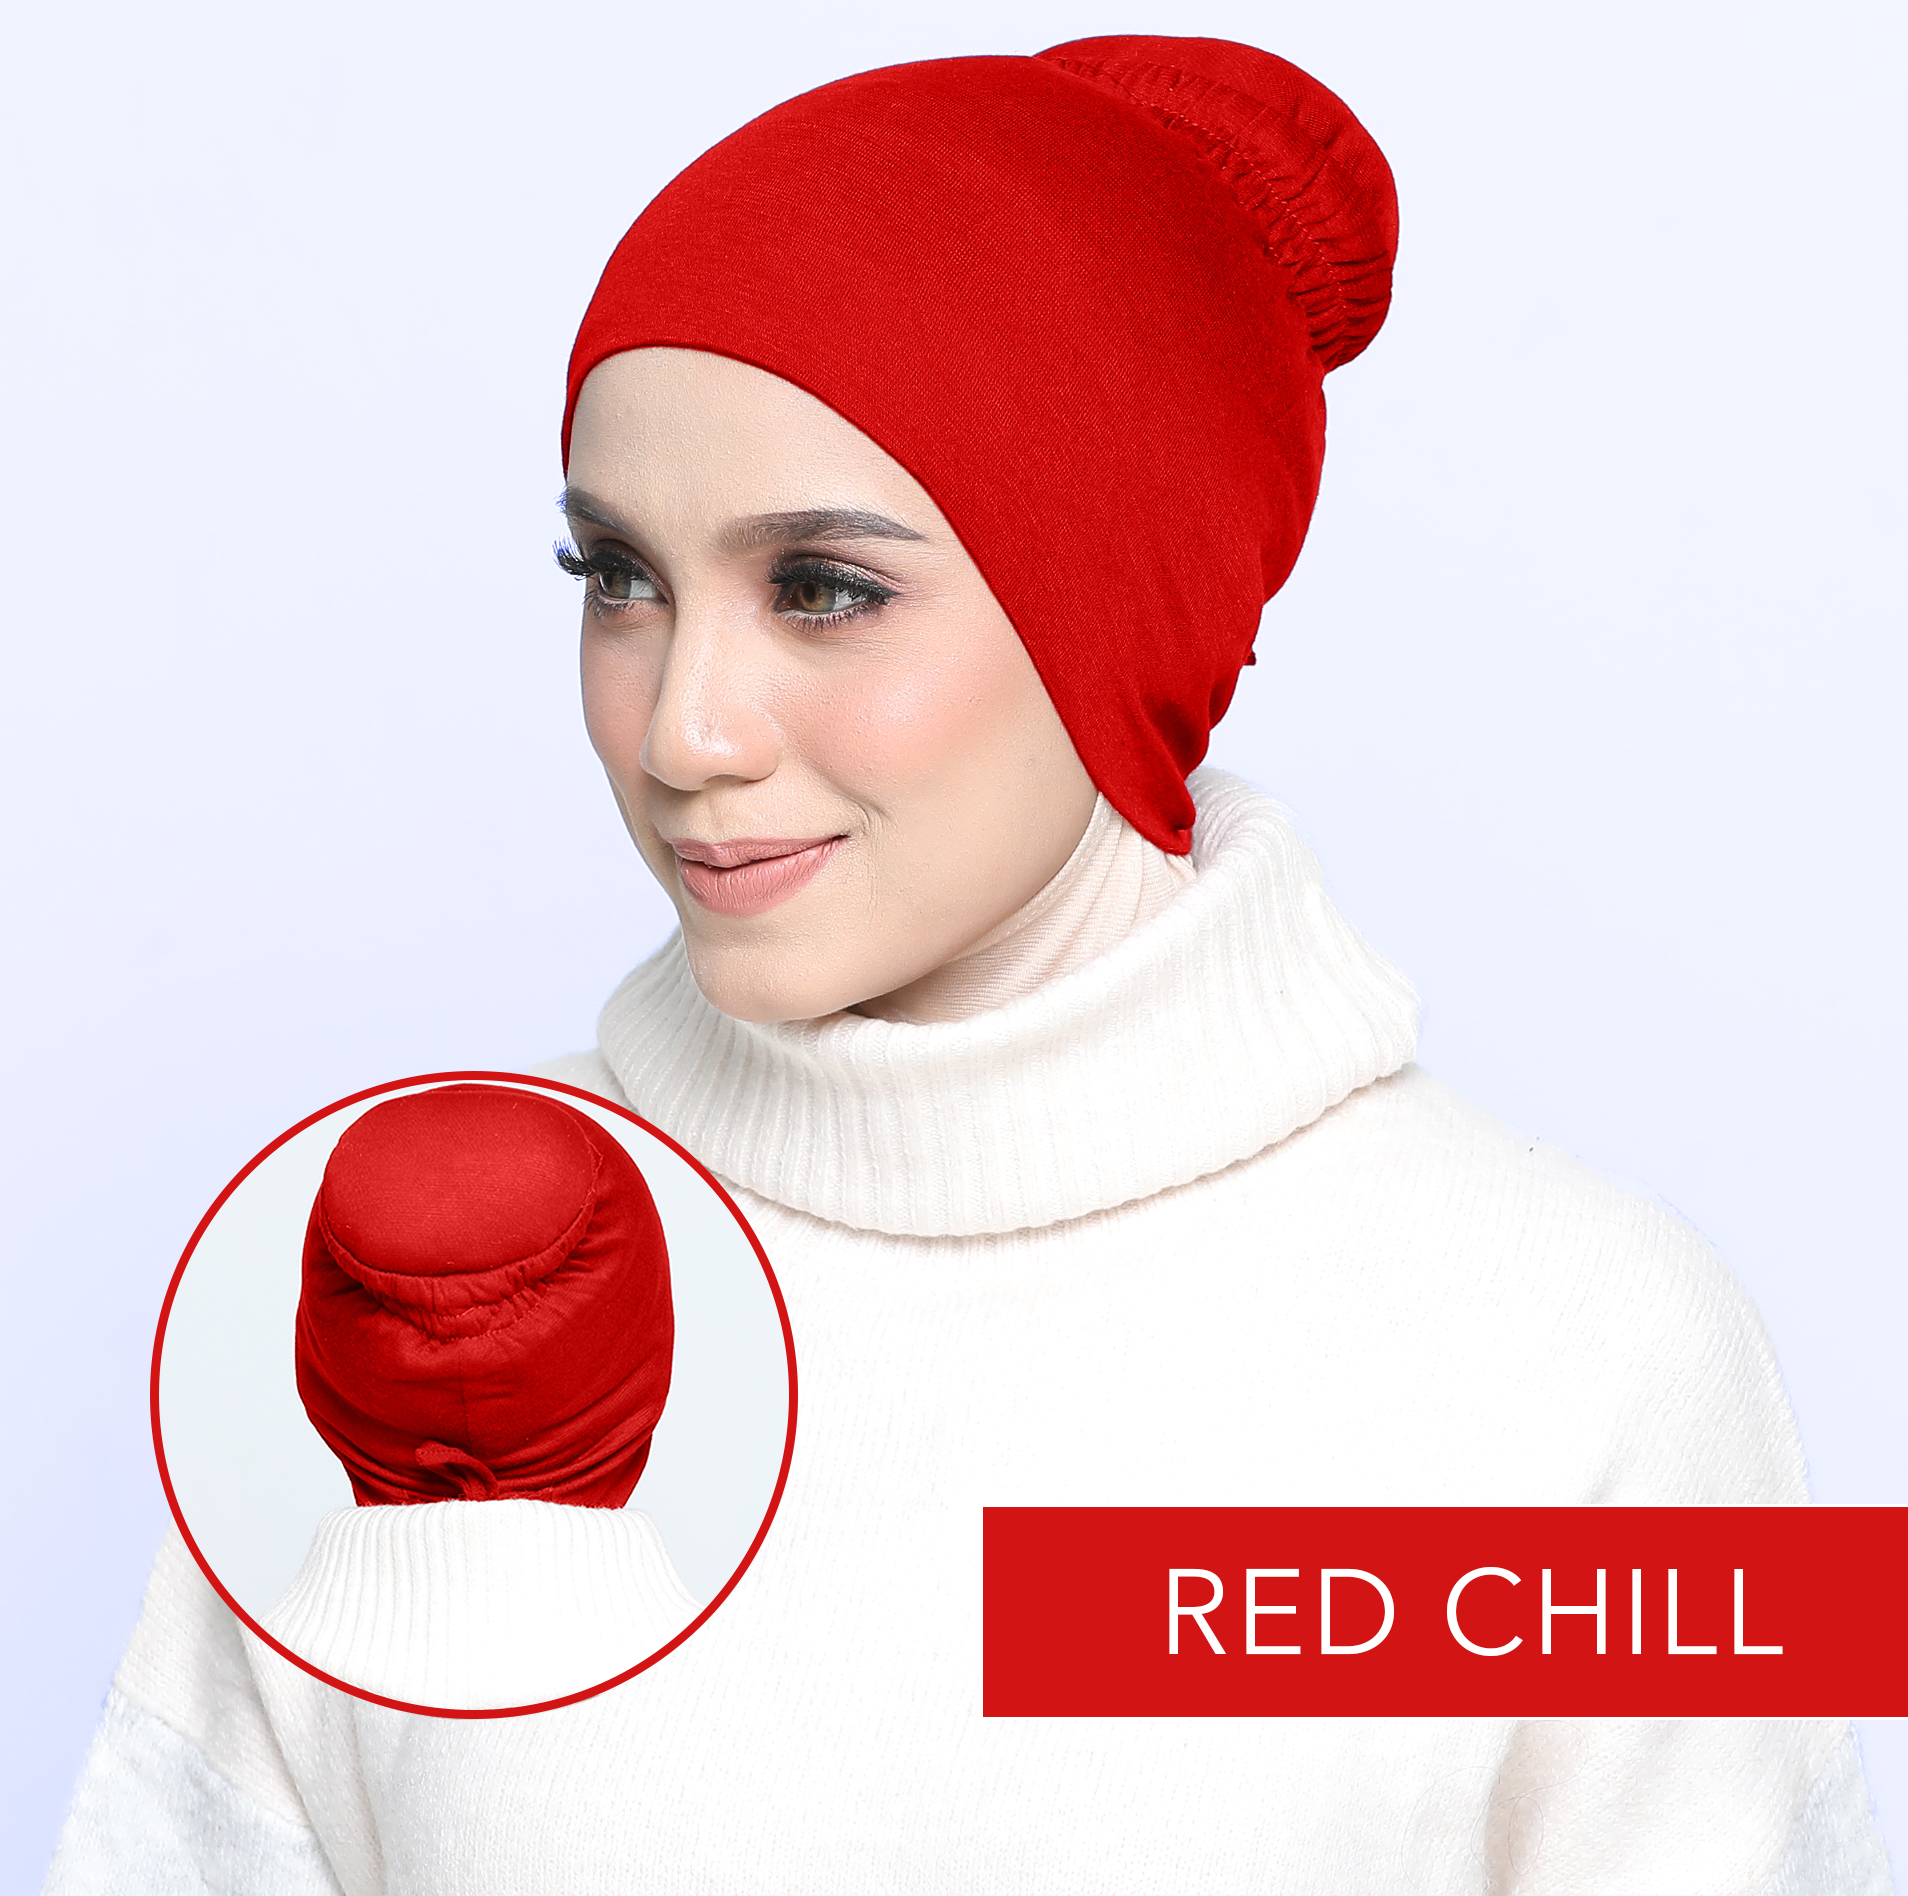 INNER SANGGOL RED CHILL.png